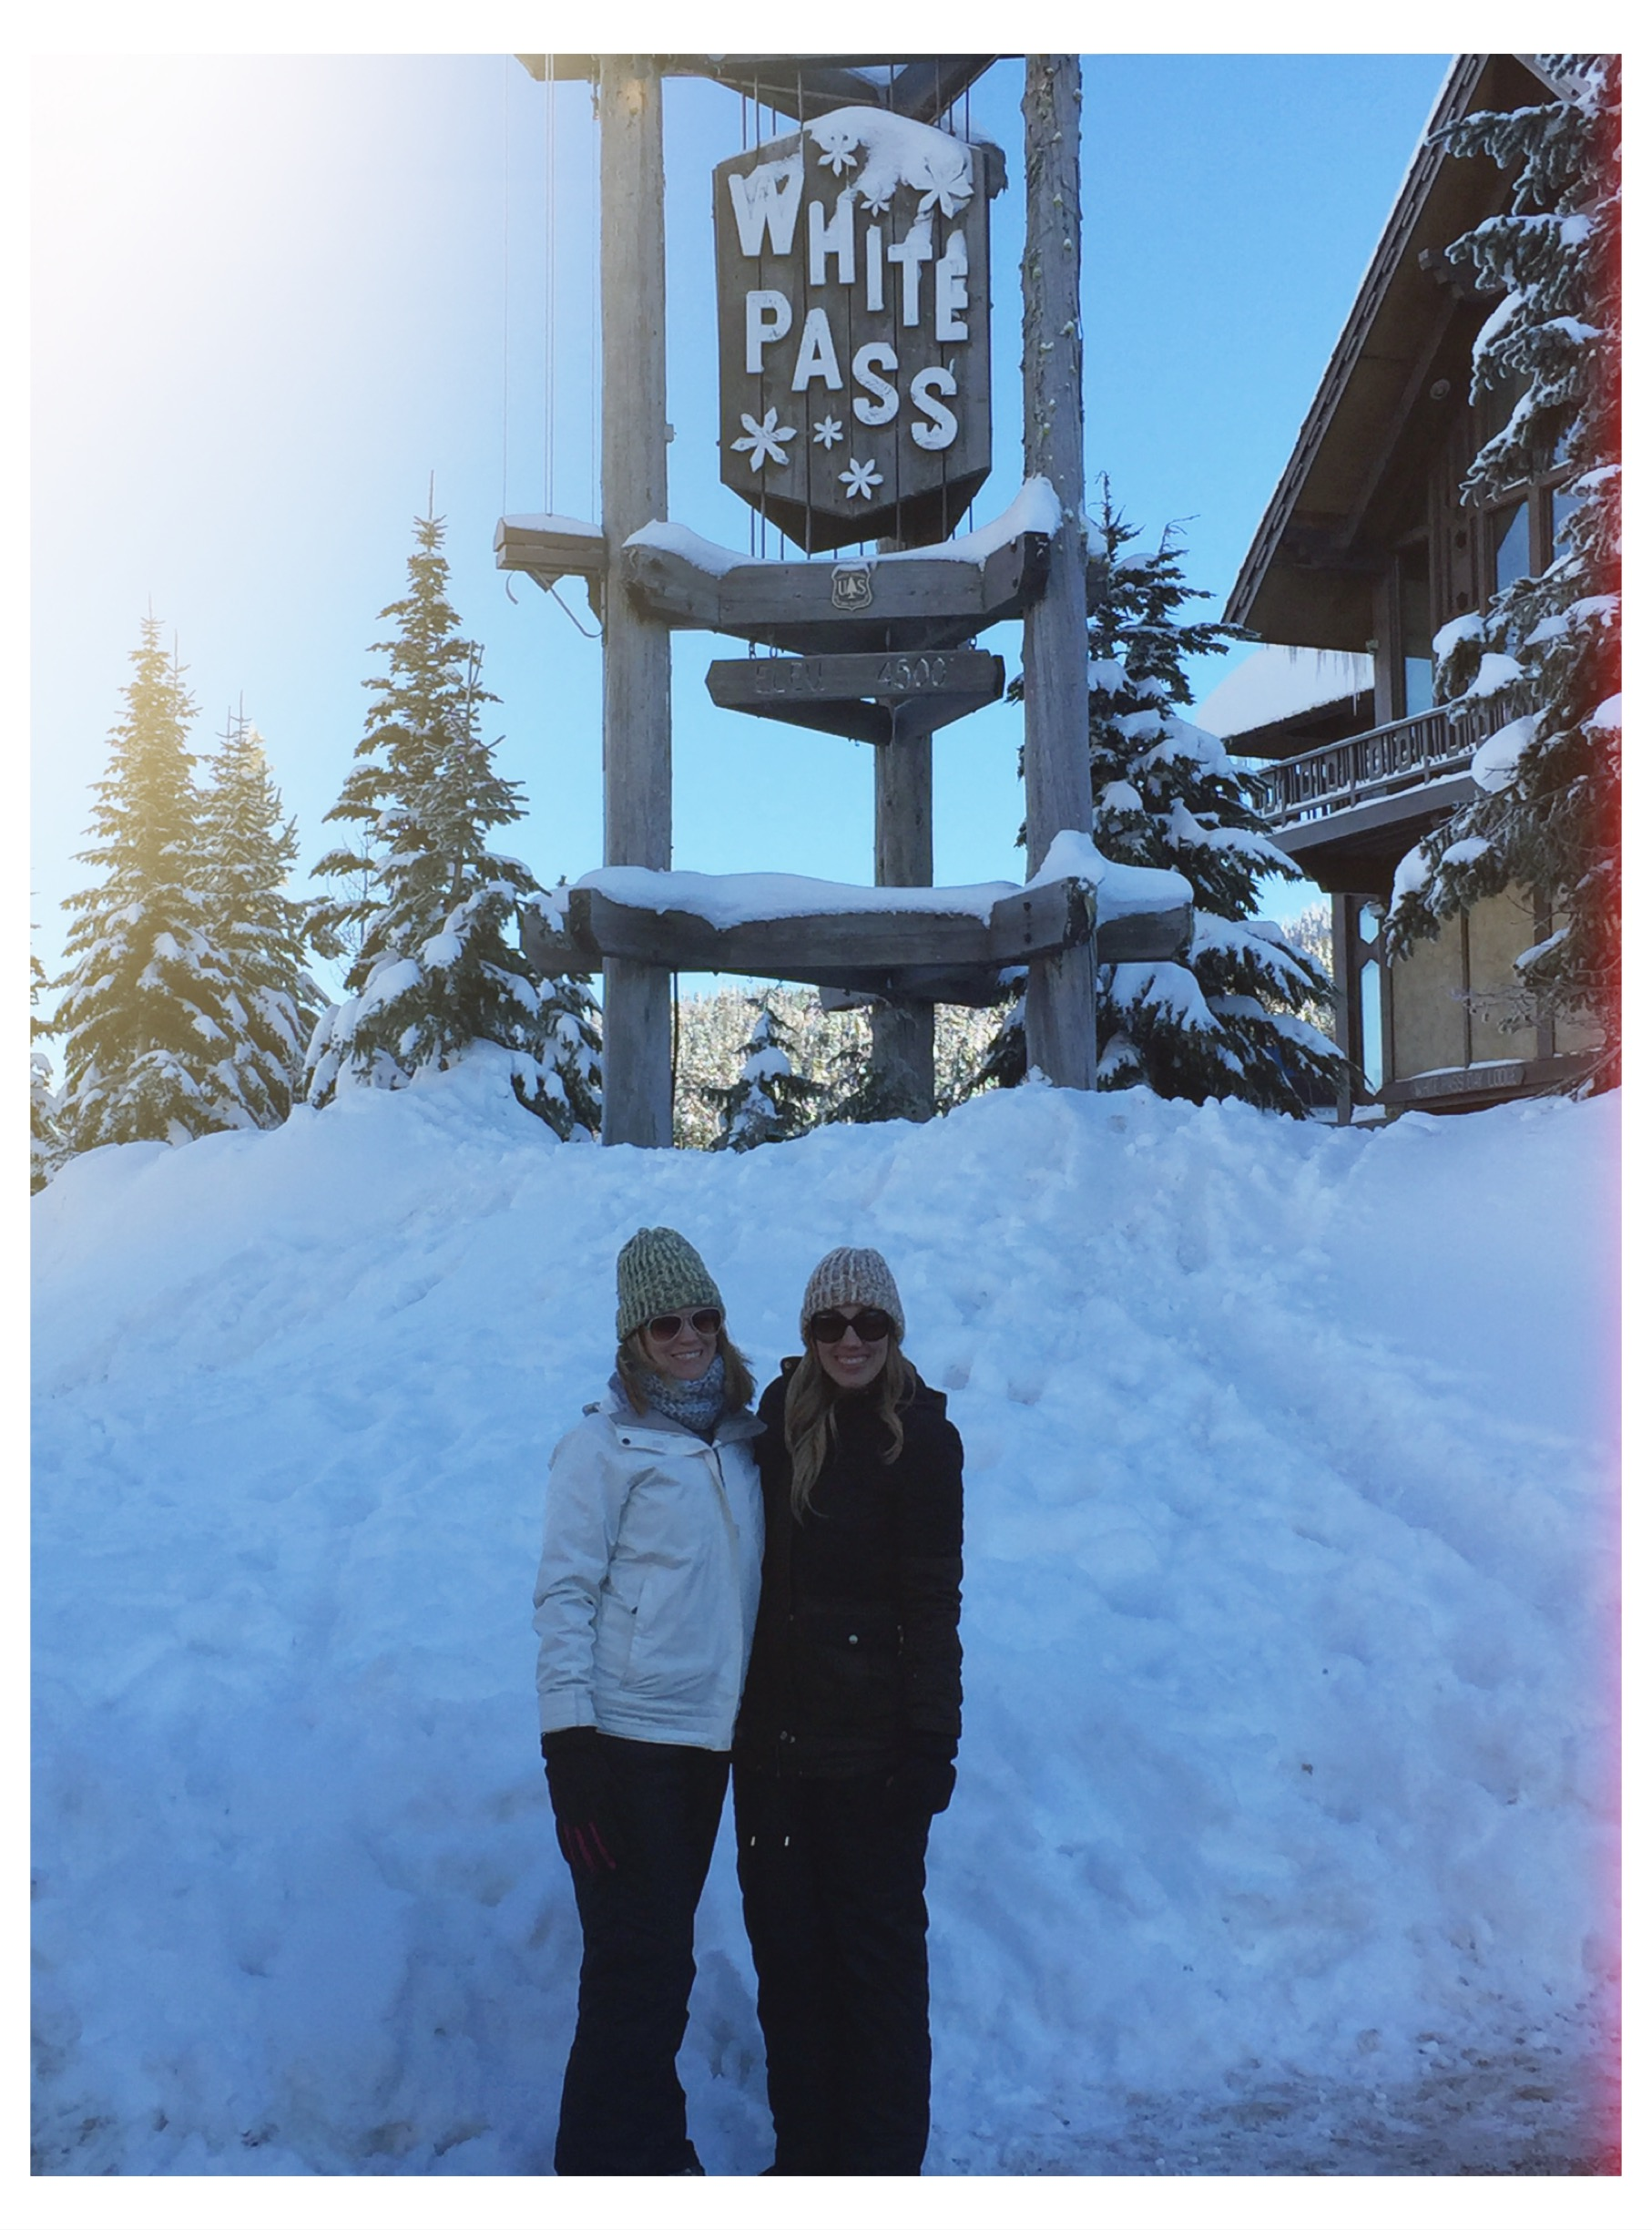 Even got to share this special day in the snow, with a dear friend. Happy New Year Everyone!